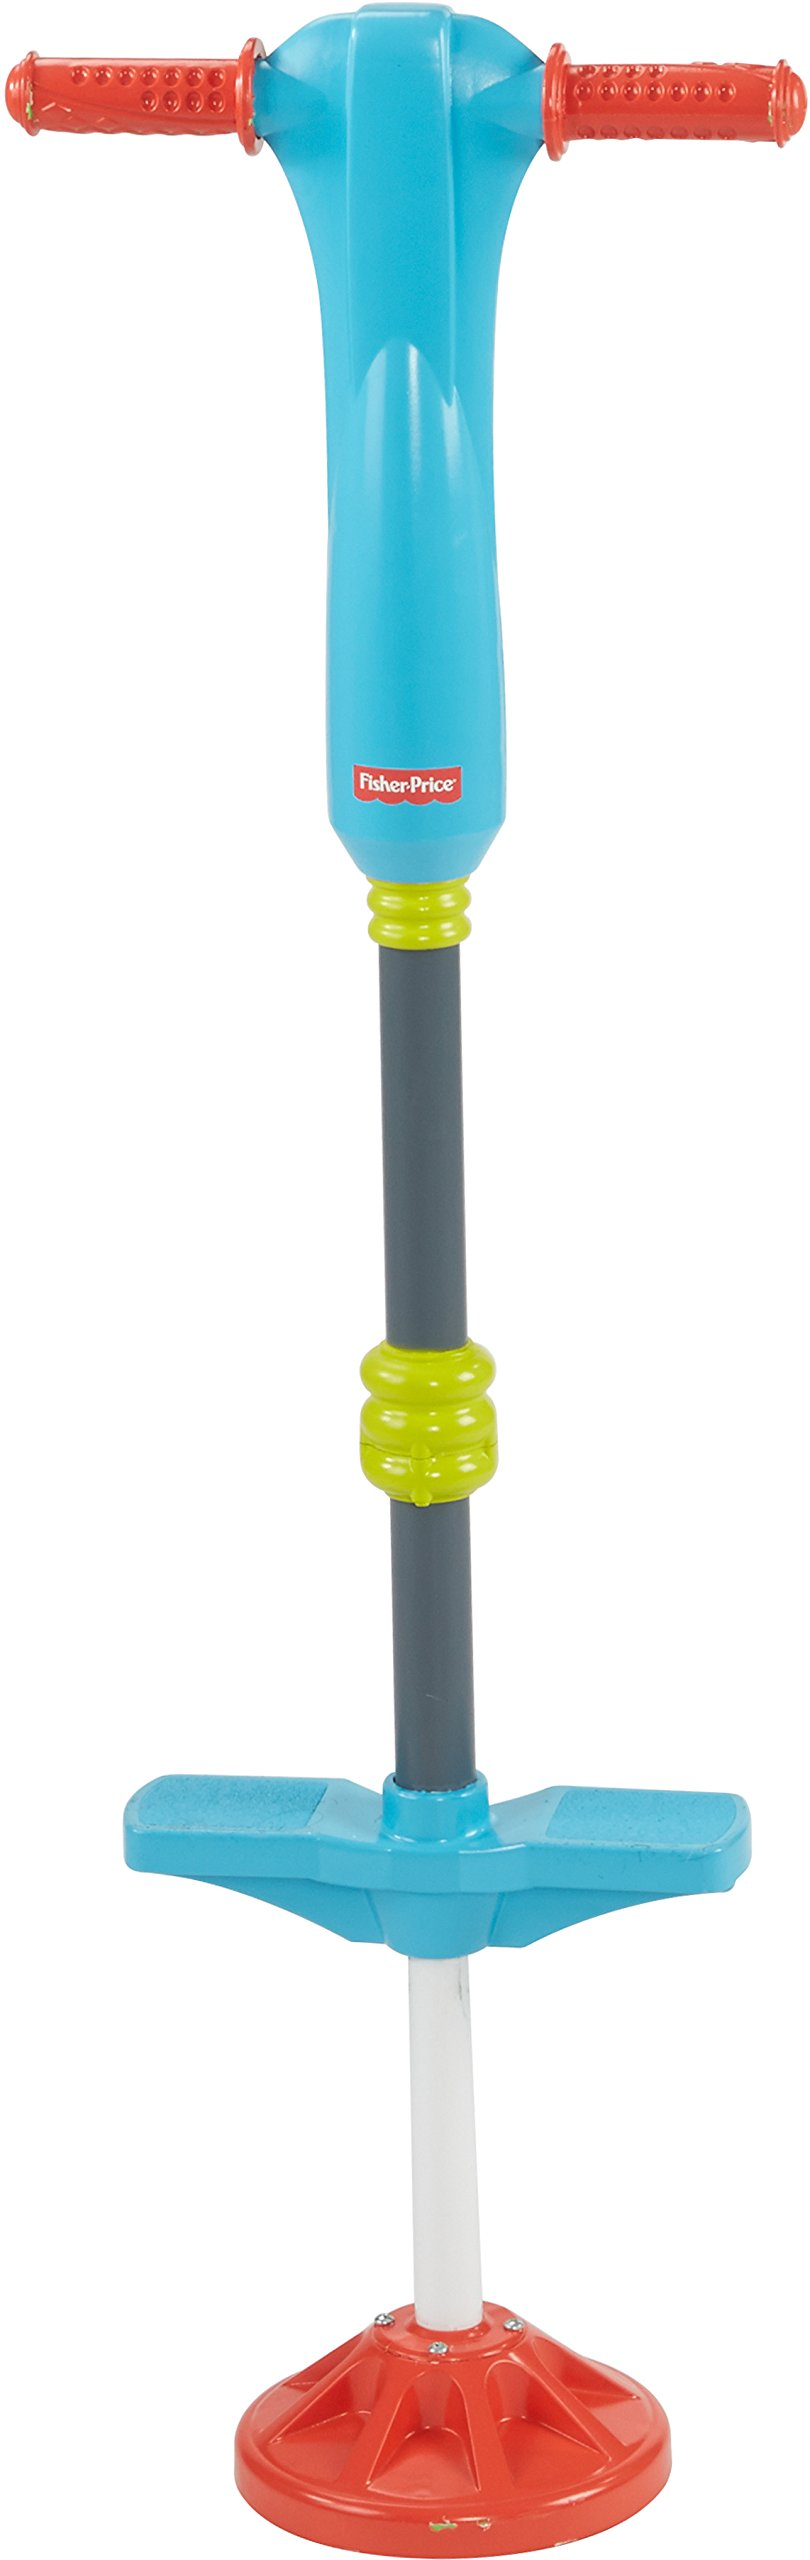 Fisher-Price Grow-to-Pro 3-in-1 Pogo by Fisher-Price (Image #7)